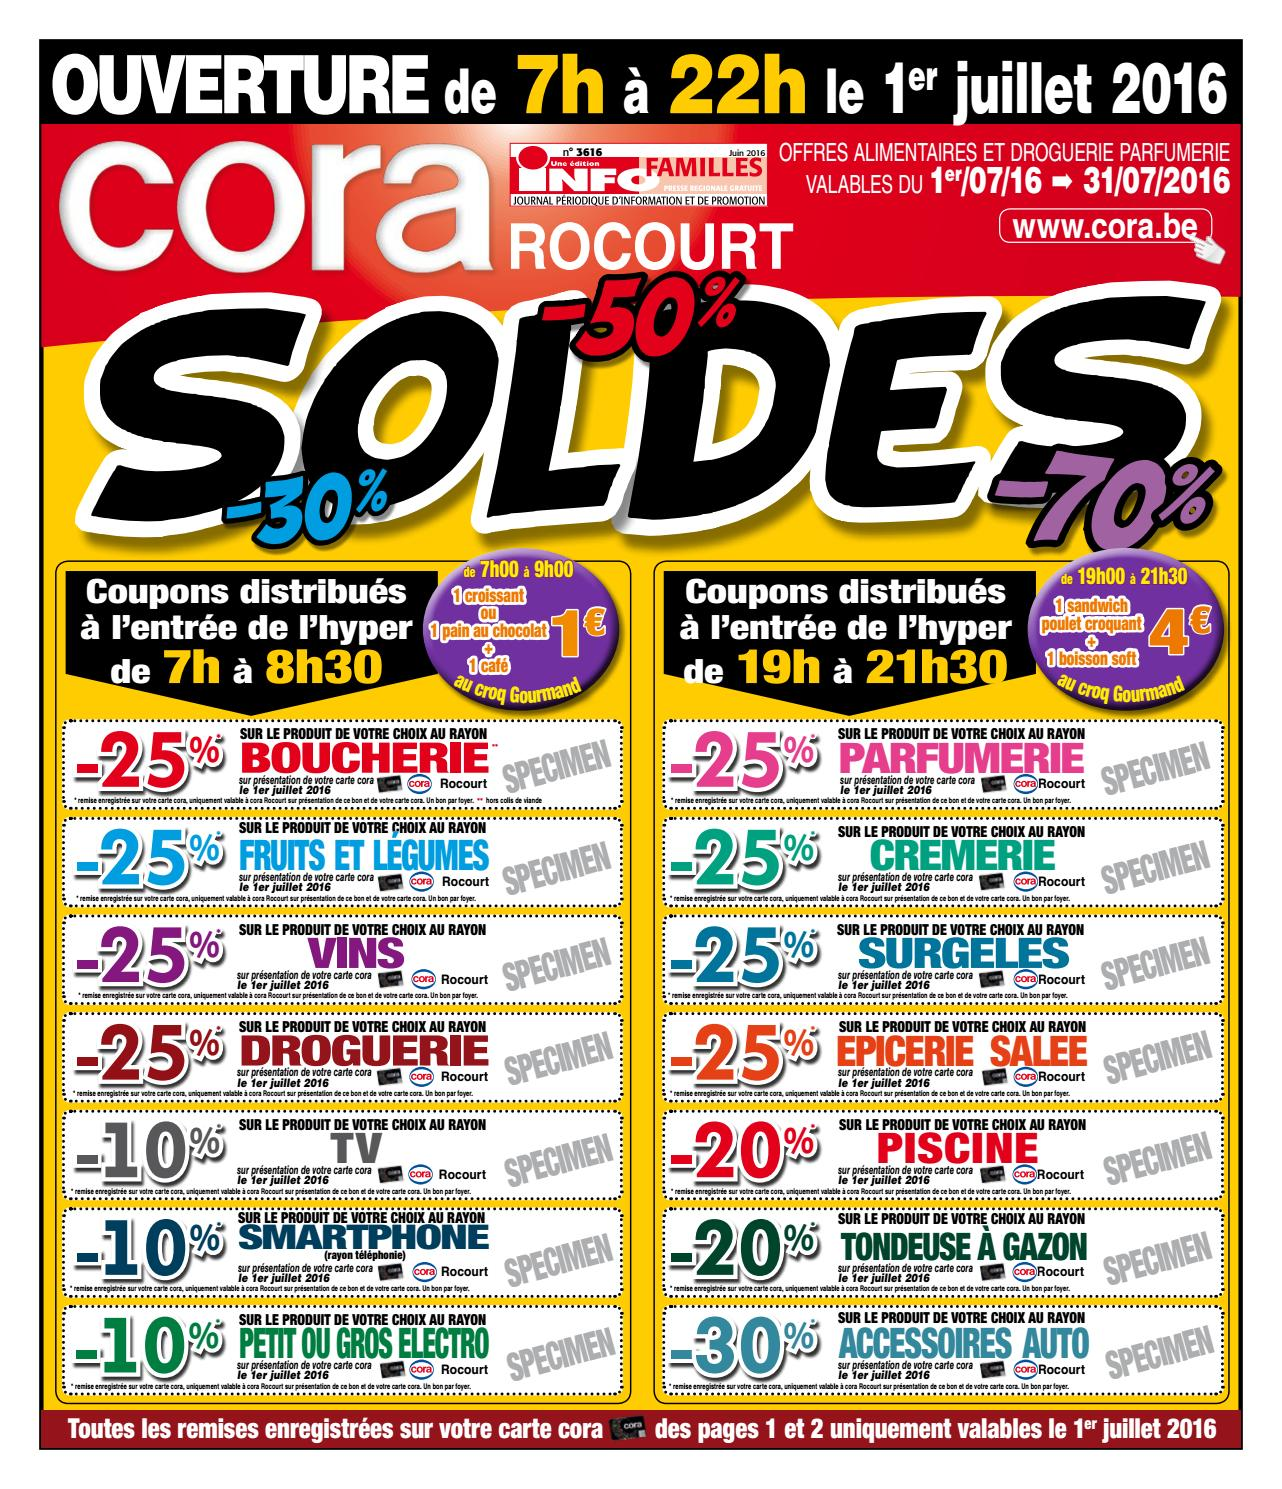 3923658519 RO Soldes by cora - issuu